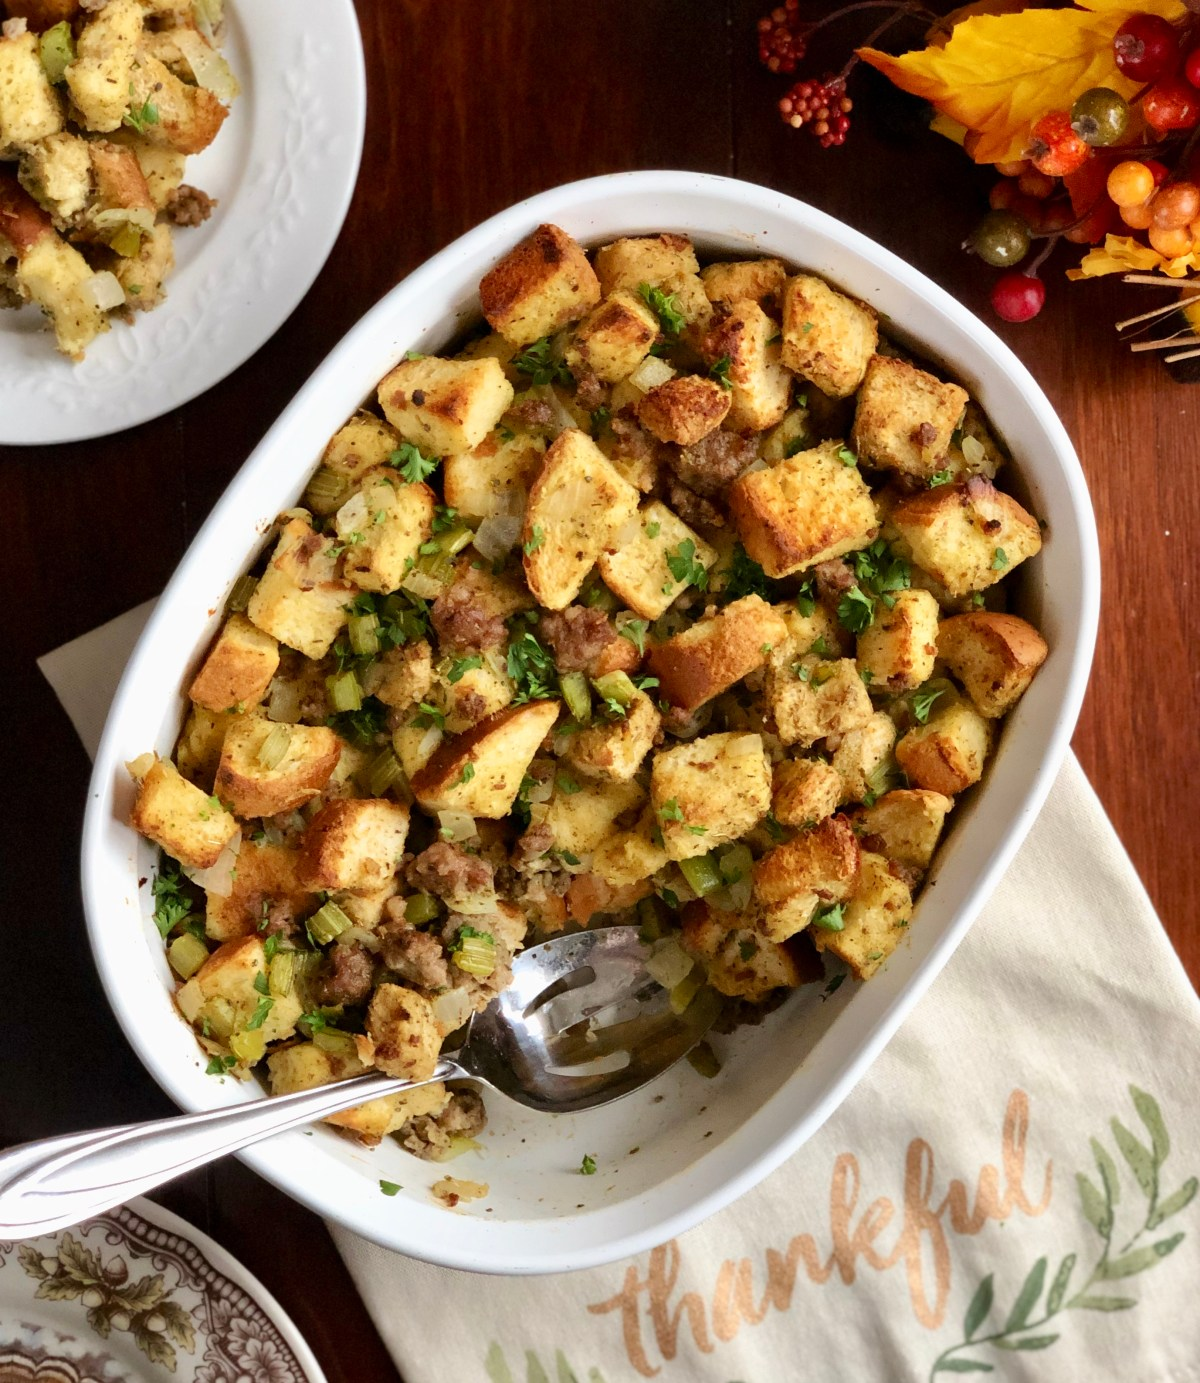 Traditional Thanksgiving Stuffing by Happylifeblogspot.com #stuffing #thanksgiving #thanksgivingrecipes #dressing #turkeystuffing #turkeydressing